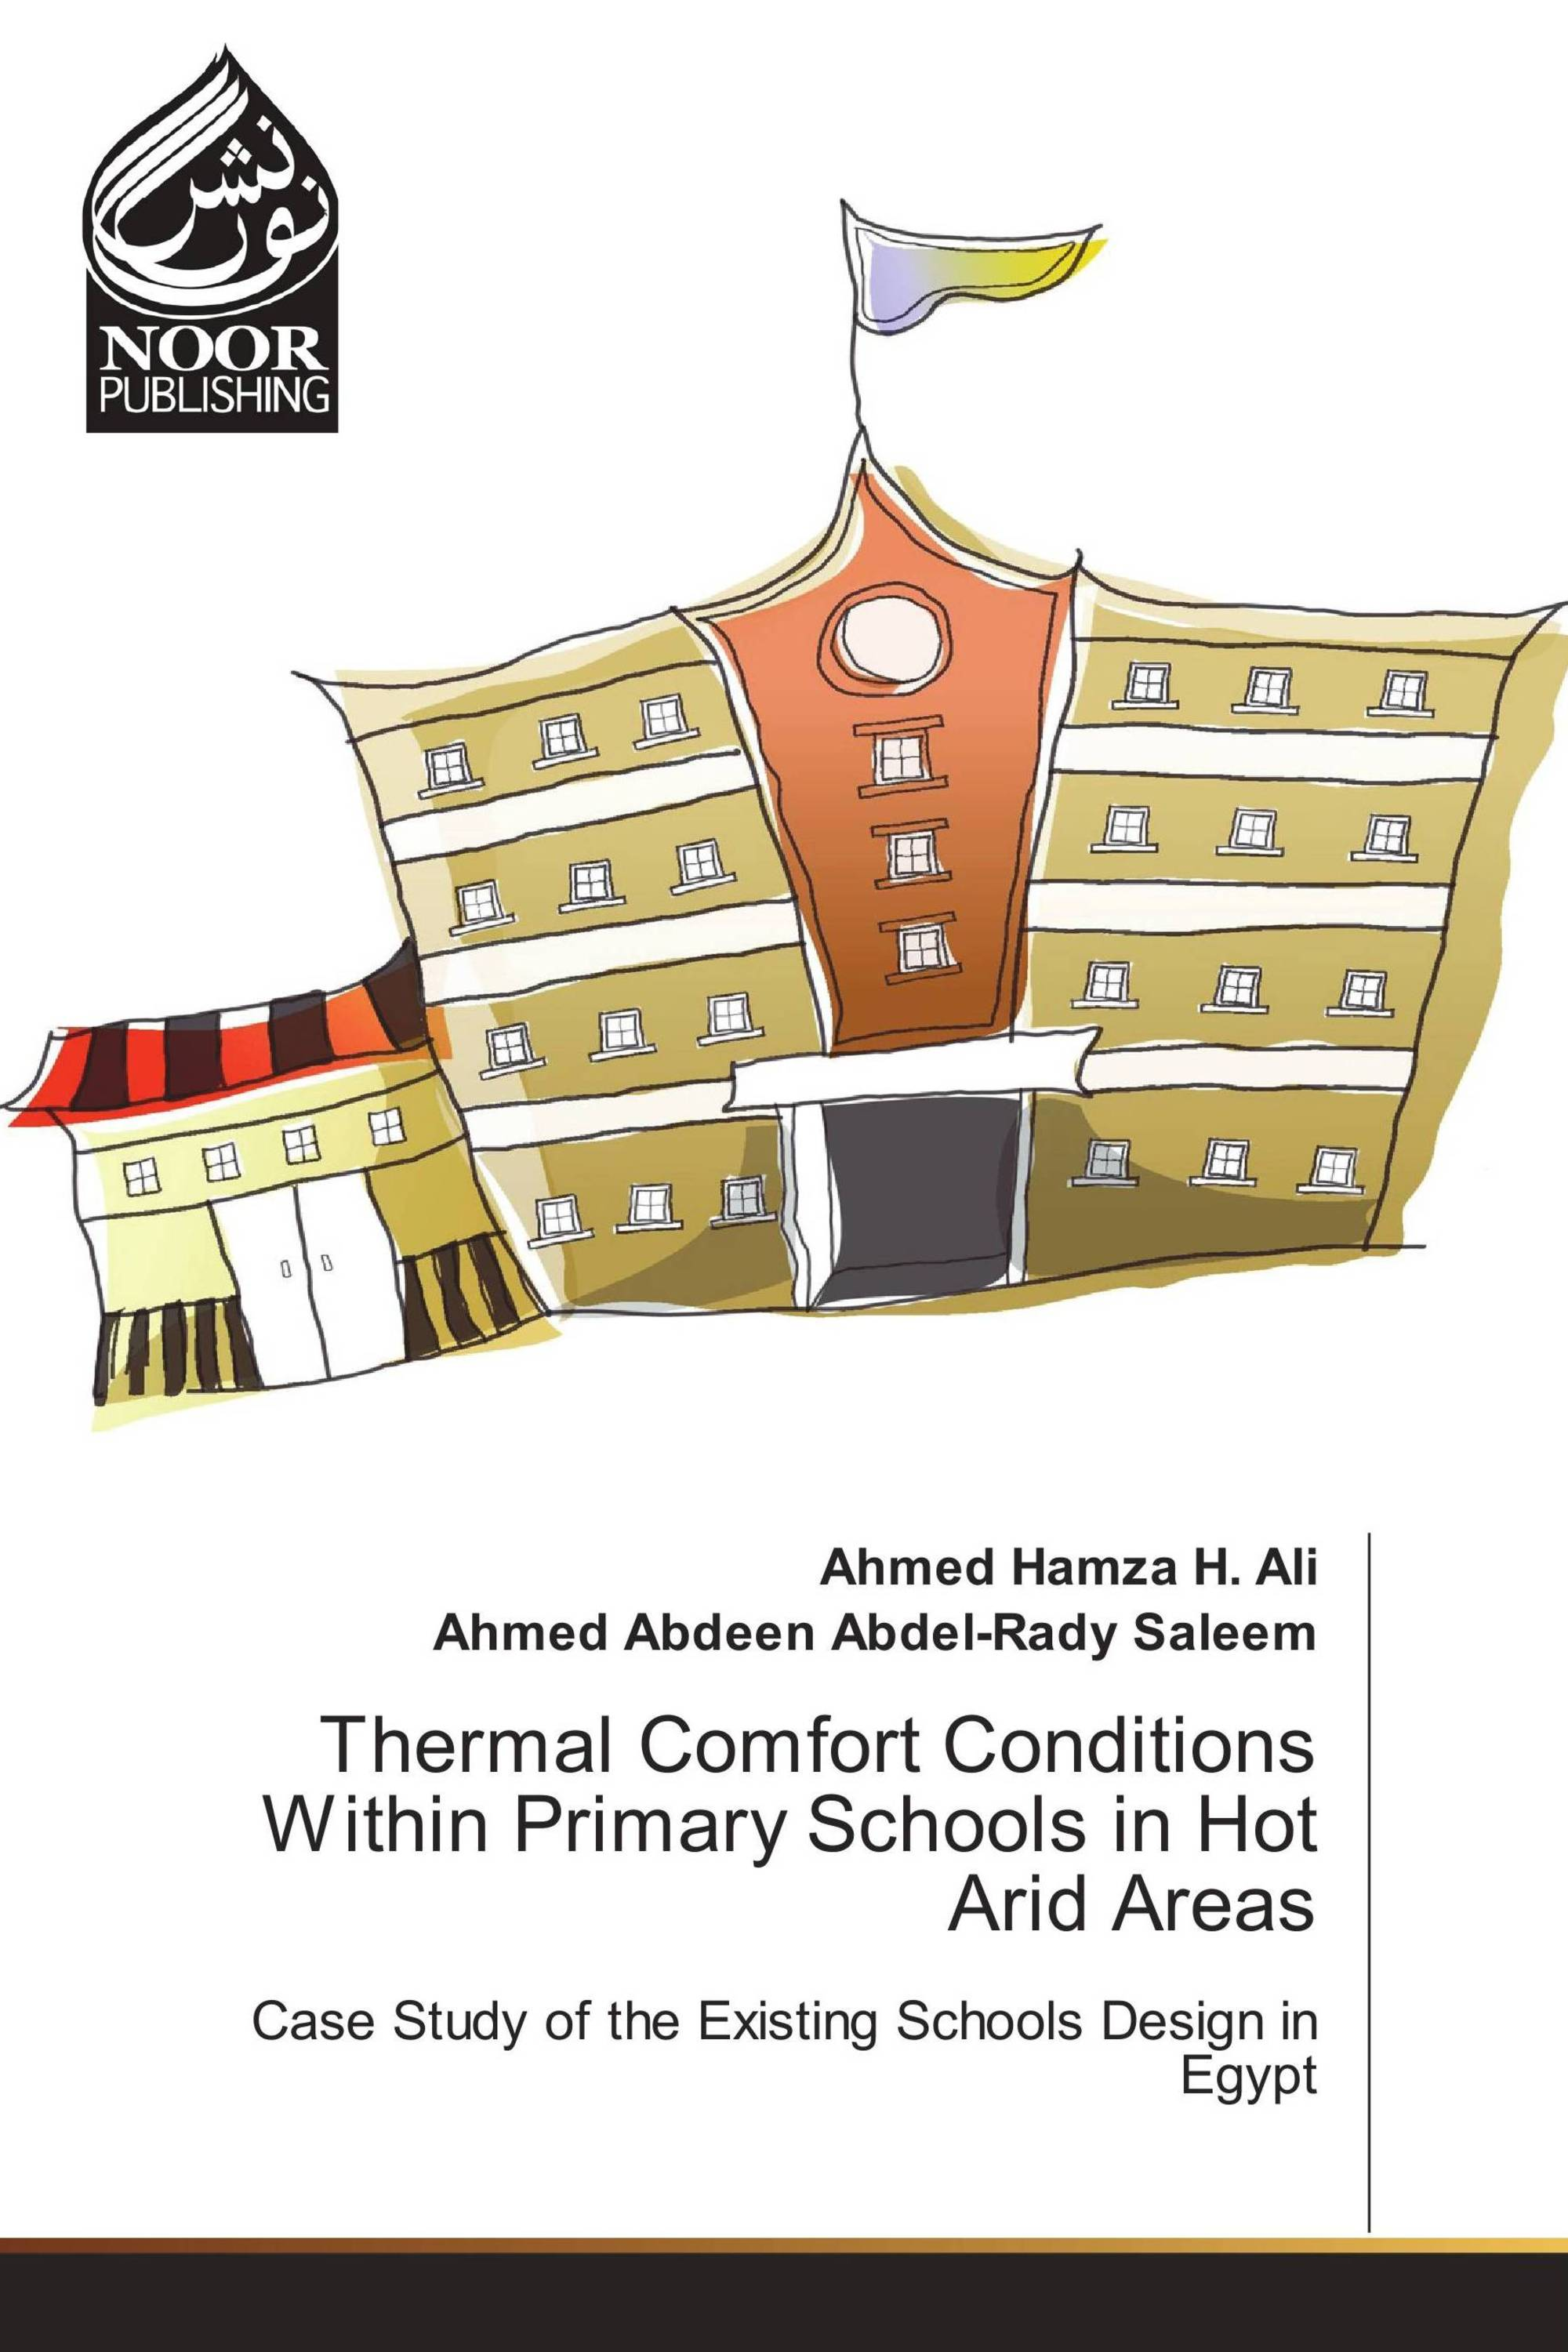 Thermal Comfort Conditions Within Primary Schools in Hot Arid Areas